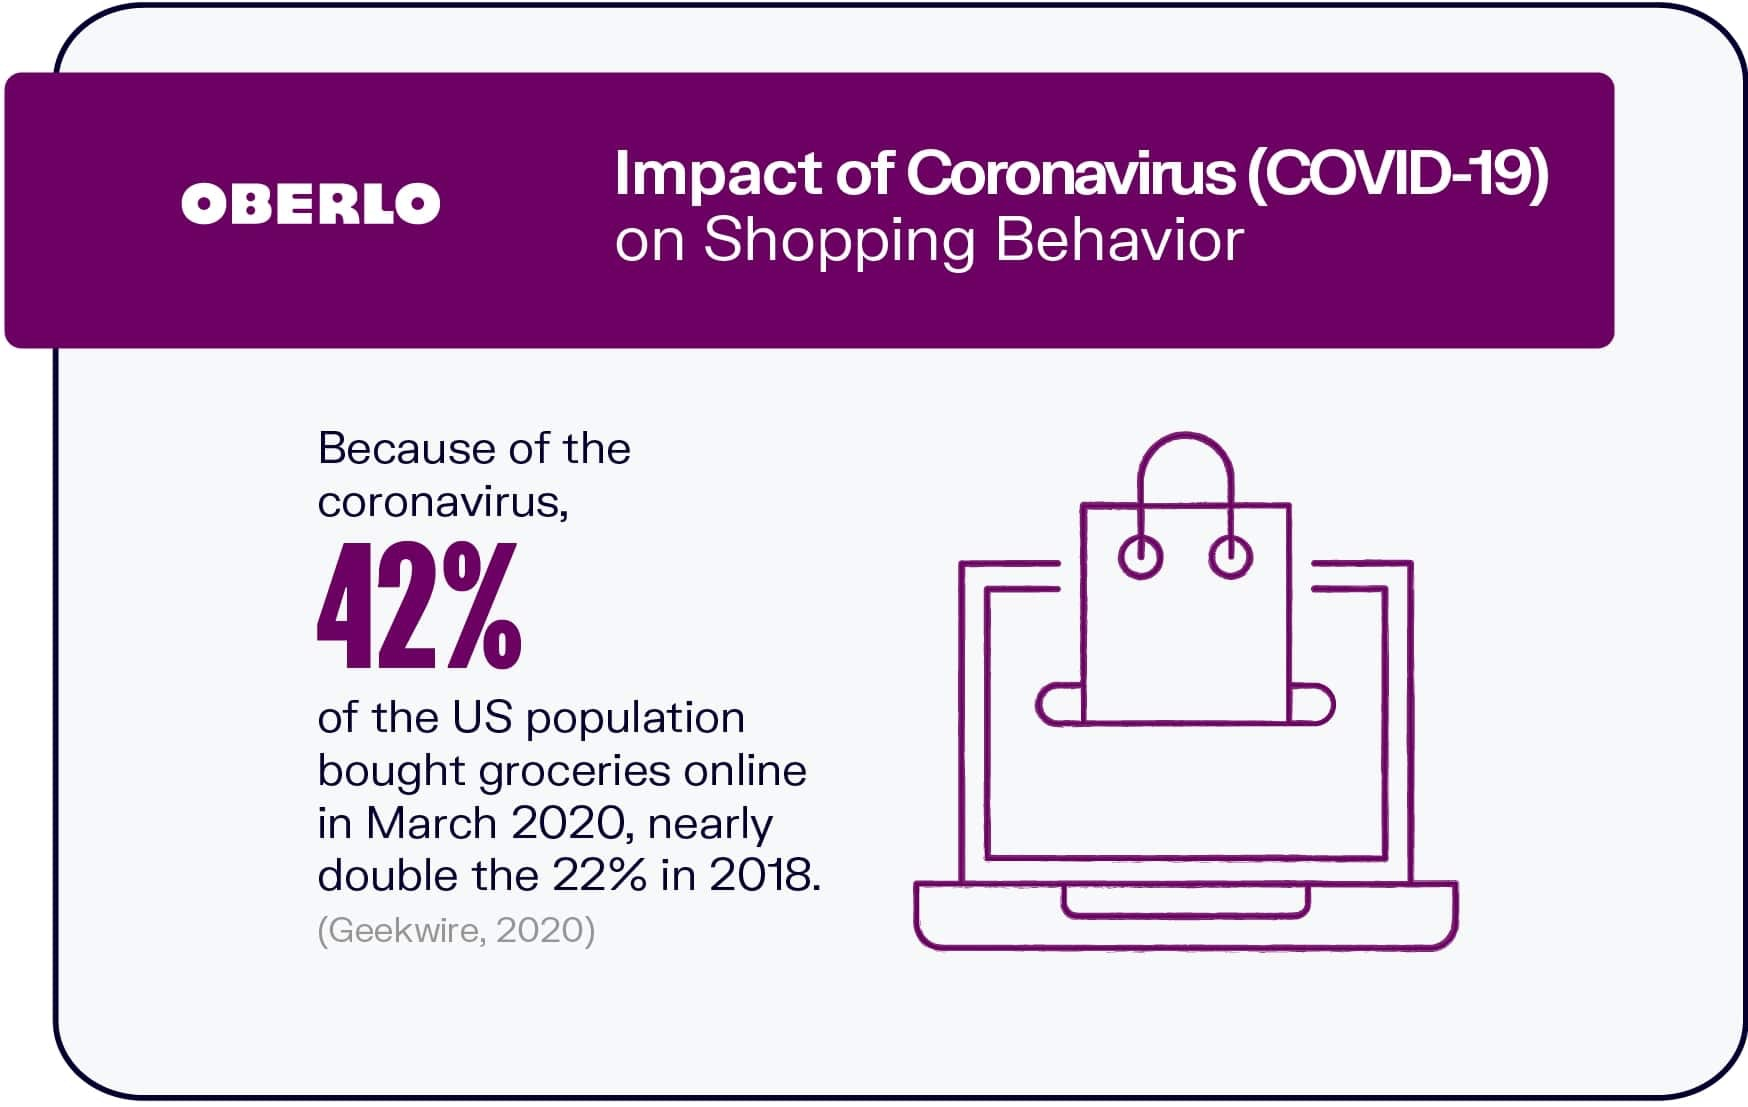 Impact of Coronavirus (COVID-19) on Shopping Behavior